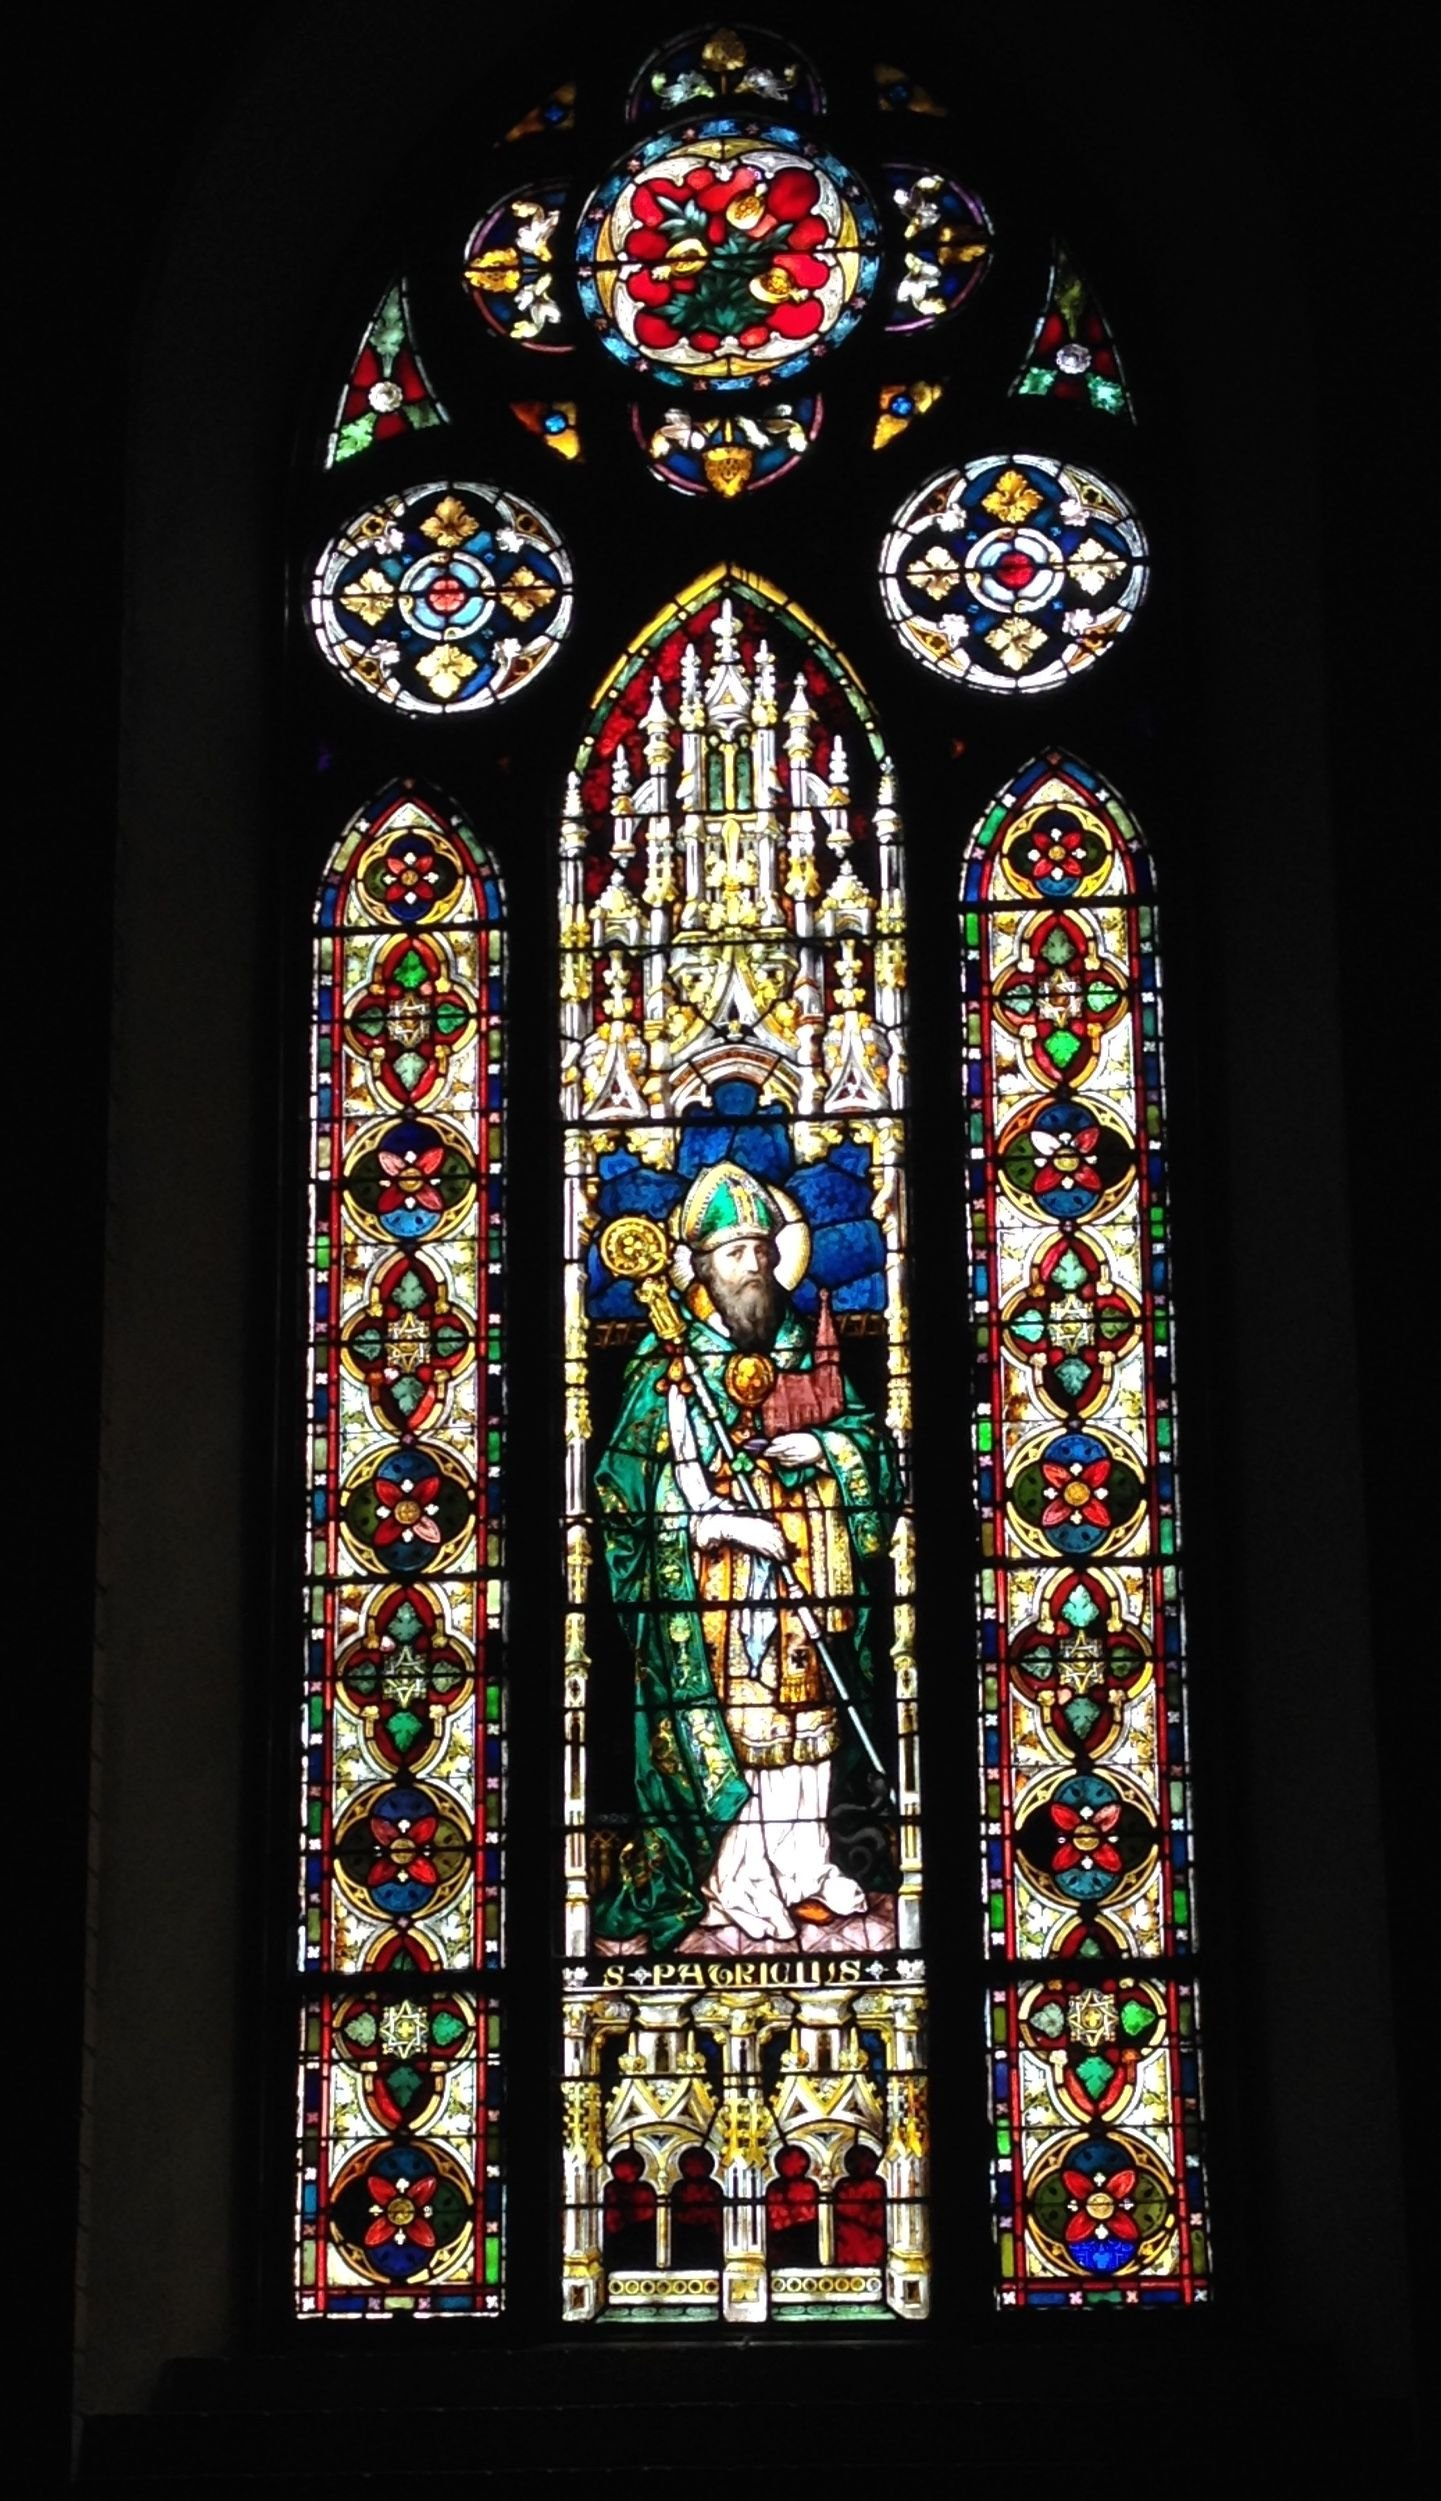 Painted window of St. Patrick, located in the interior of the Abbey Basilica. Created by the Royal Bavarian Establishment of Francis Meyer & Company in Munich, Germany, 1890s.